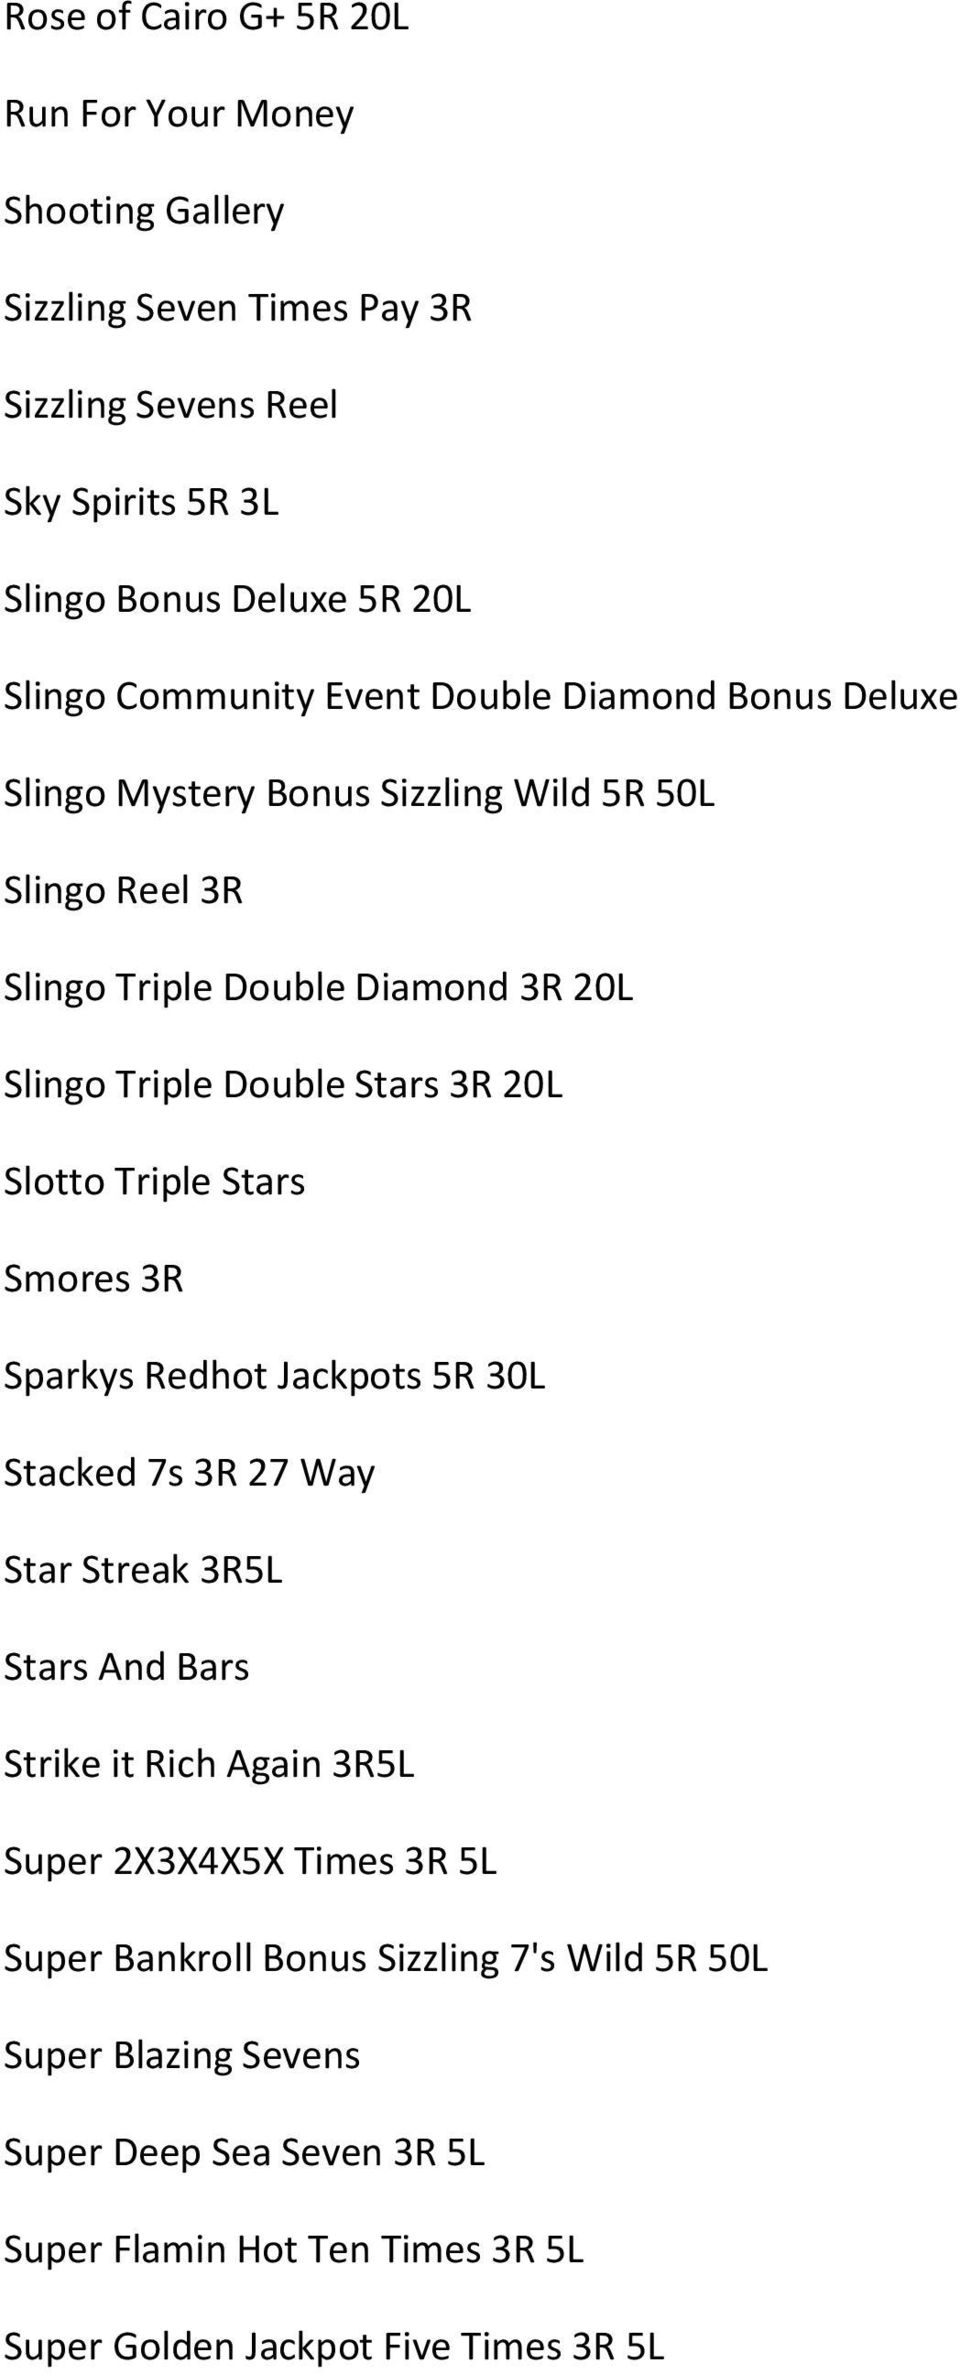 3R 20L Slotto Triple Stars Smores 3R Sparkys Redhot Jackpots 5R 30L Stacked 7s 3R 27 Way Star Streak 3R5L Stars And Bars Strike it Rich Again 3R5L Super 2X3X4X5X